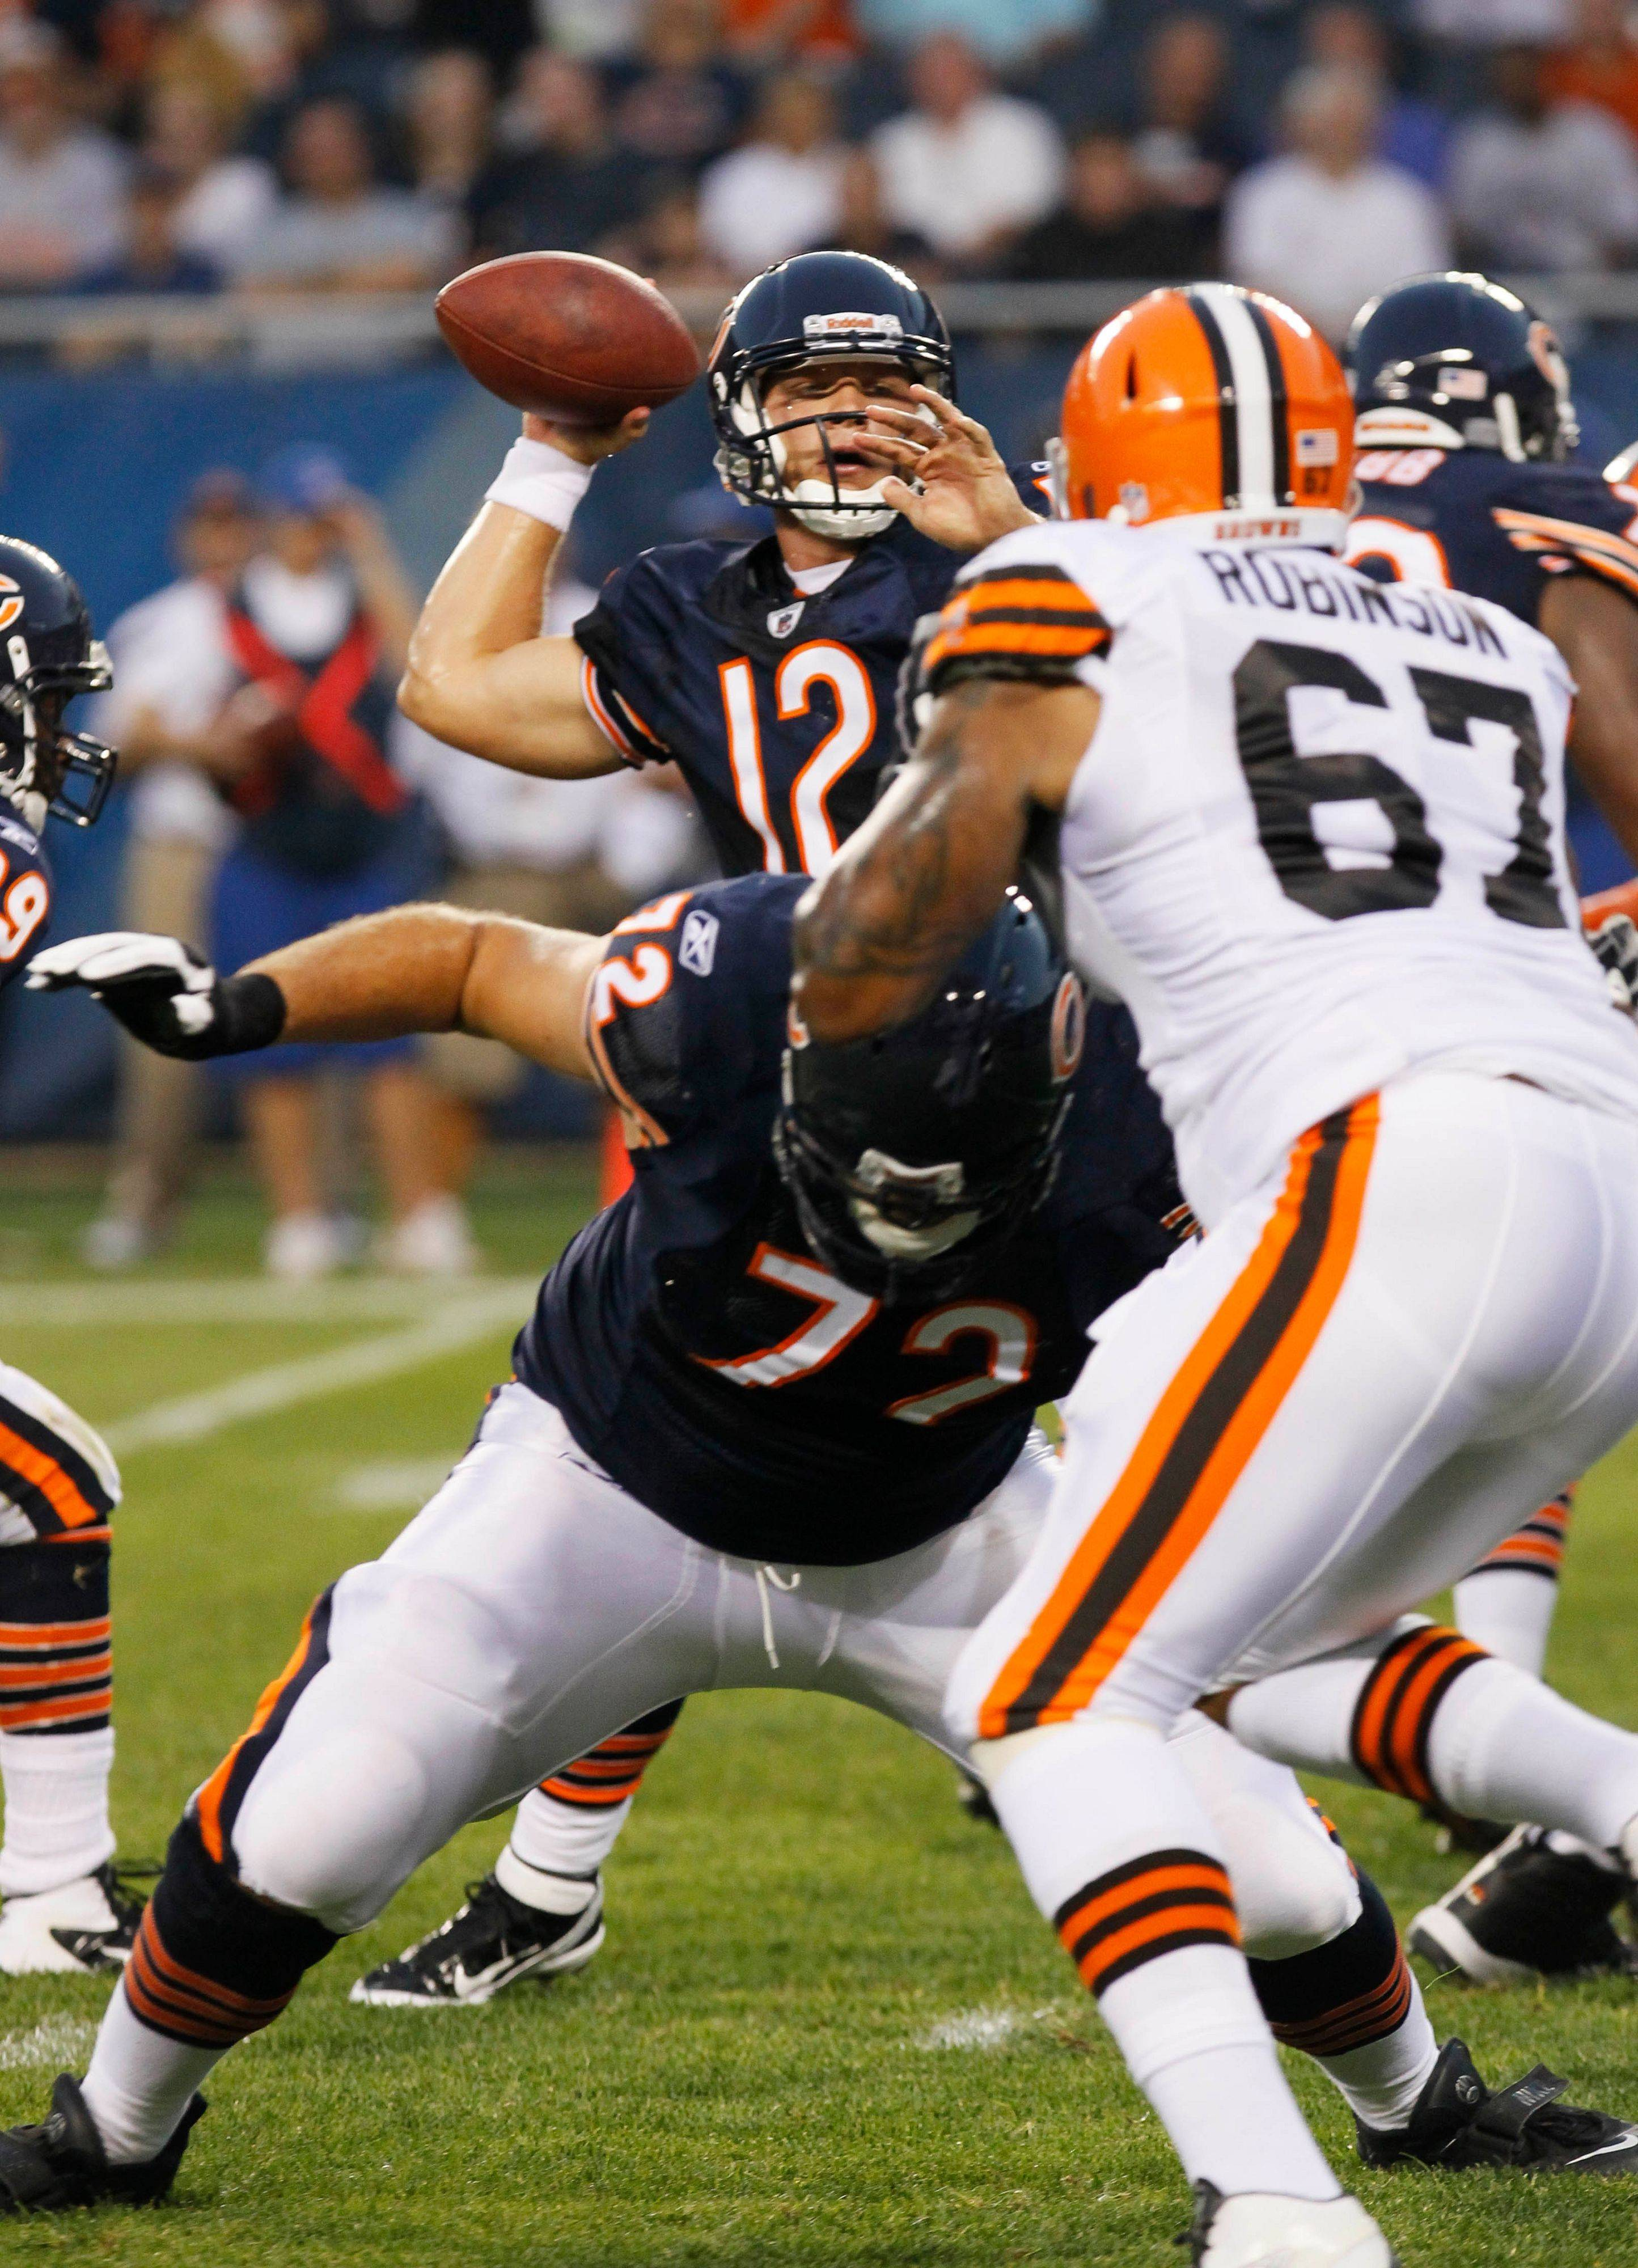 Chicago Bears quarterback Caleb Hanie prepares to pass as teammate Gabe Carimi blocks Cleveland Browns defensive end Derreck Robinson in the first half.